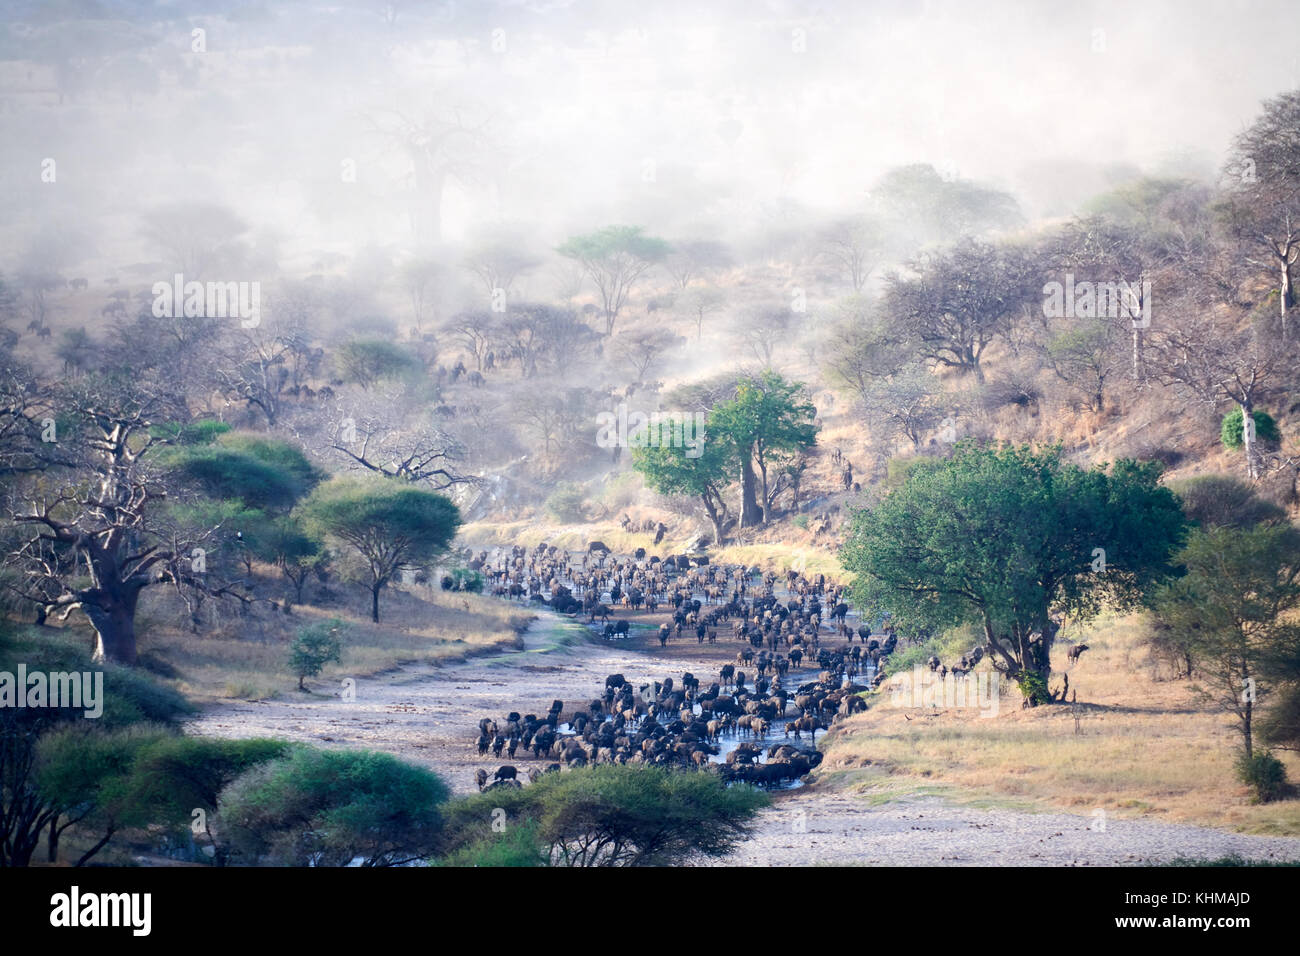 Wildbeest crossing river in Tarangire National park Tanzania with dust in the air and blue sky - Stock Image